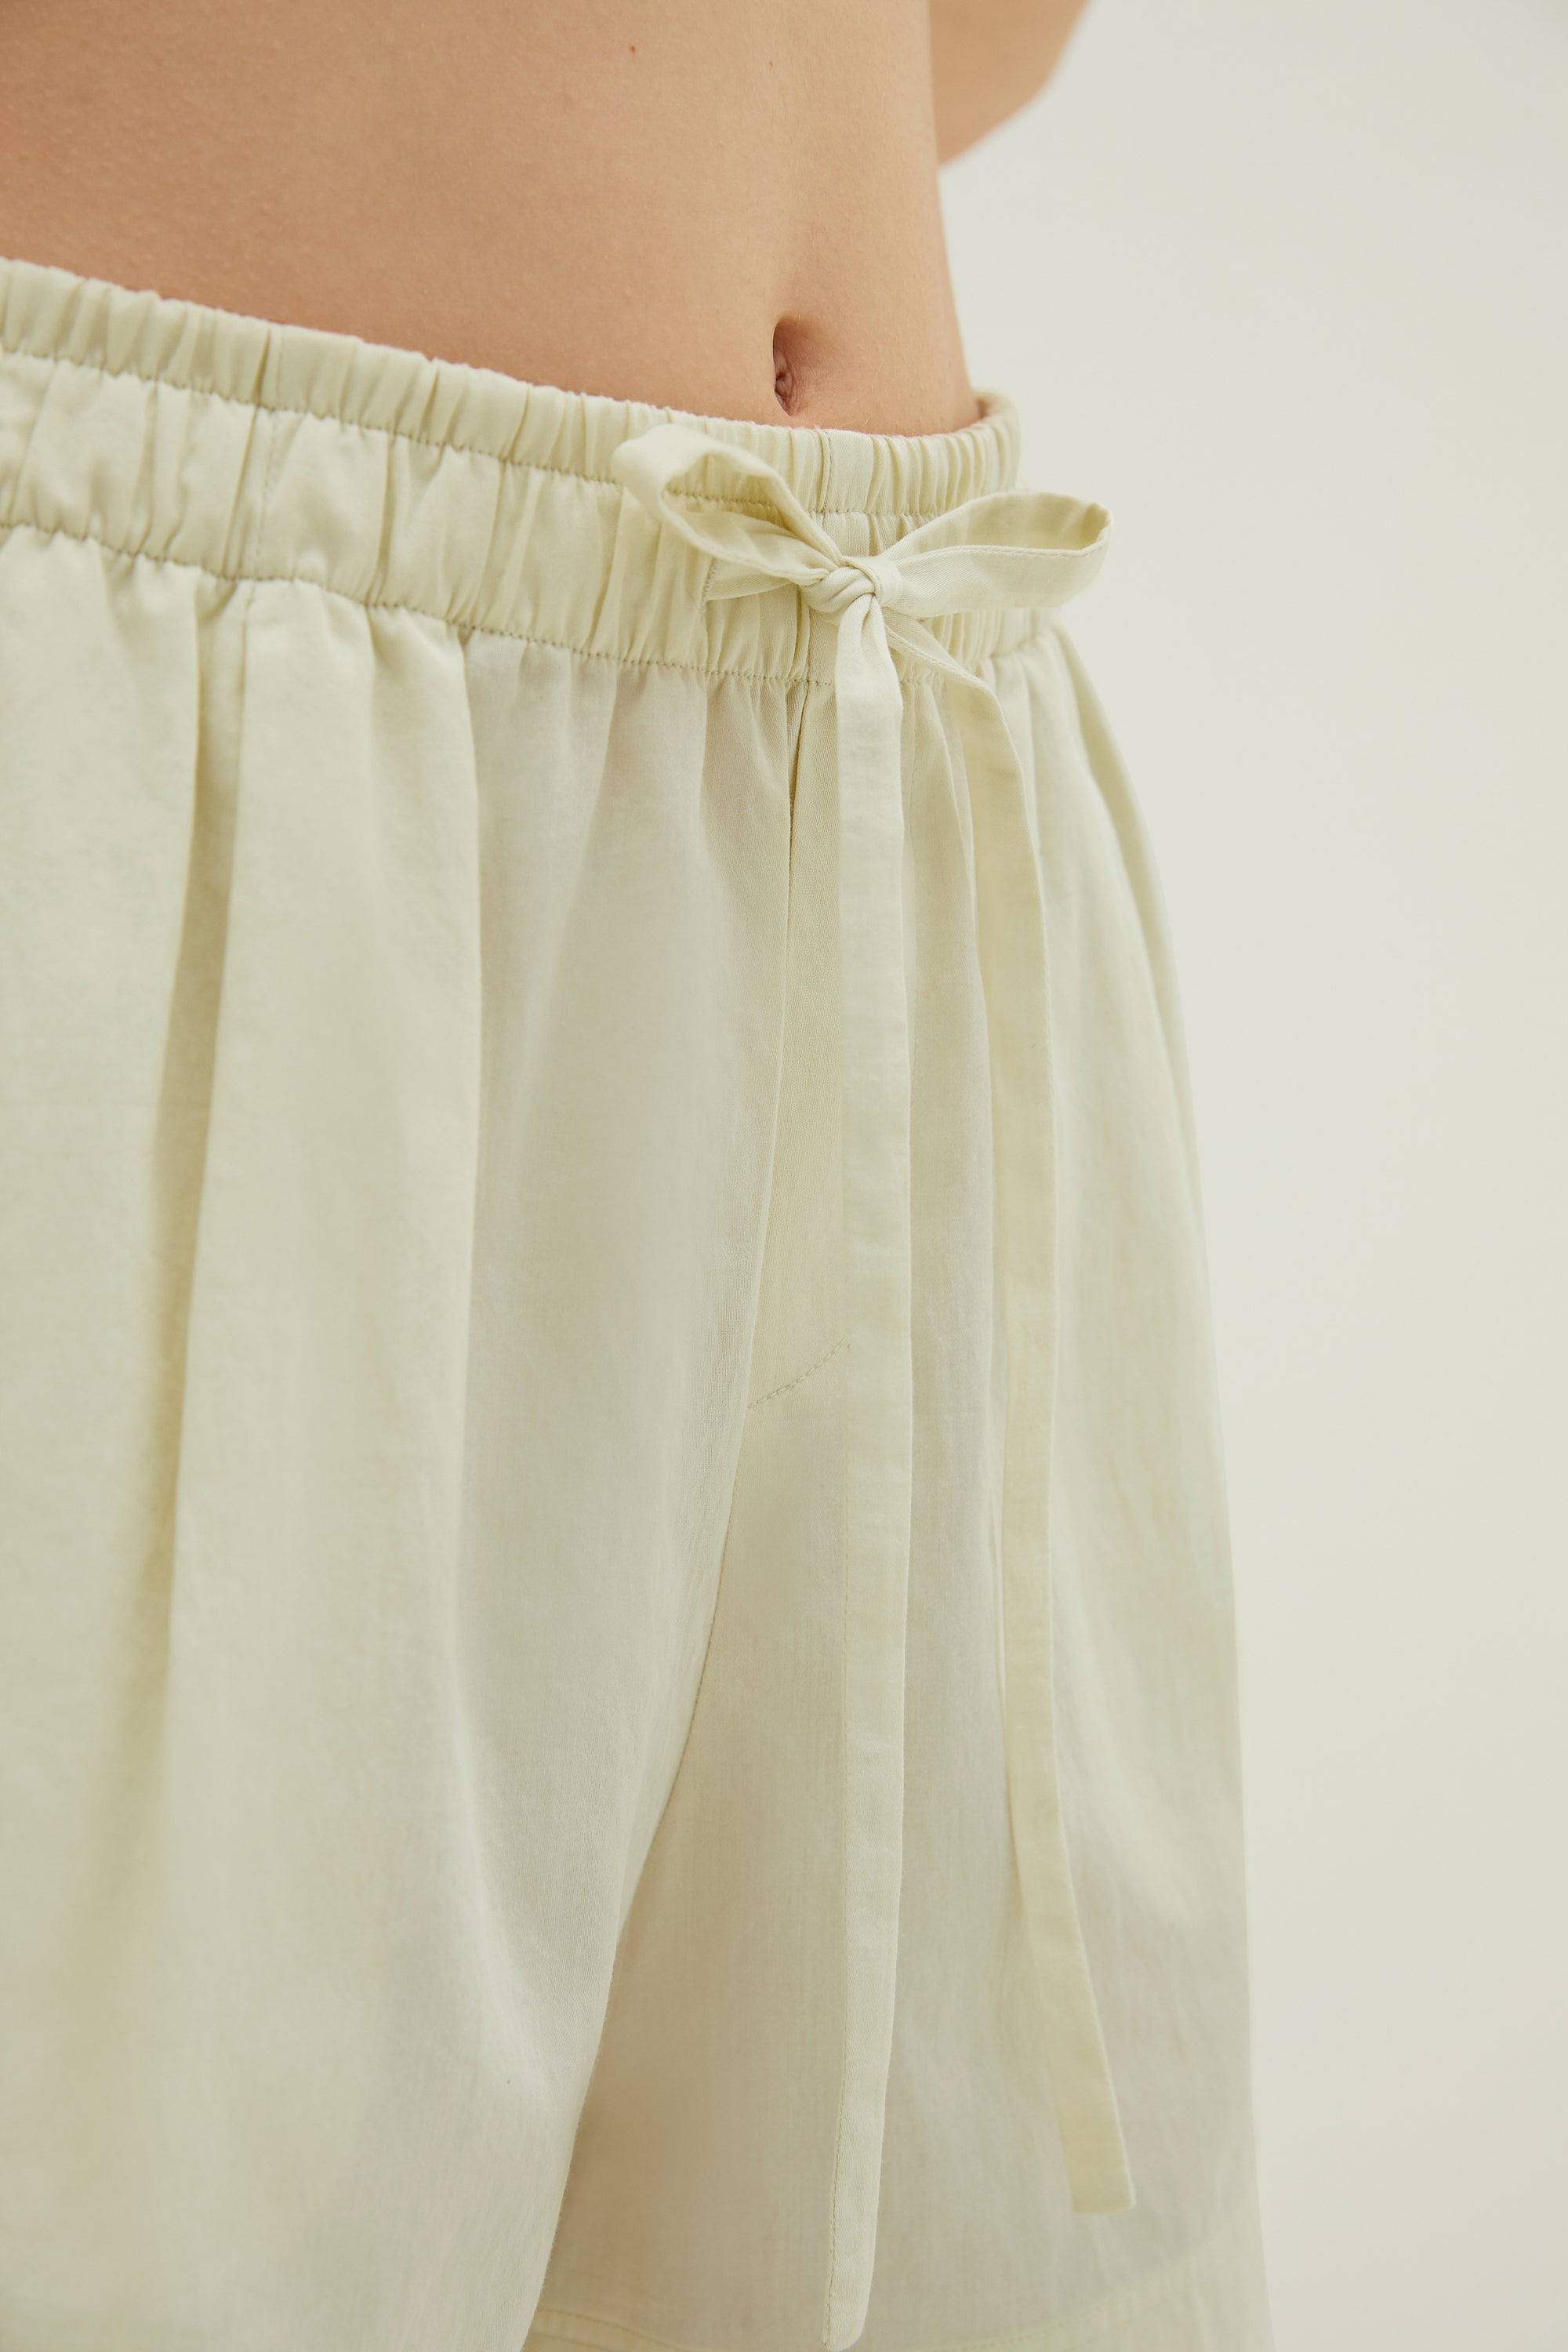 NEIWAI Cotton Sleep Shorts in Mojito. Adjustable waistline